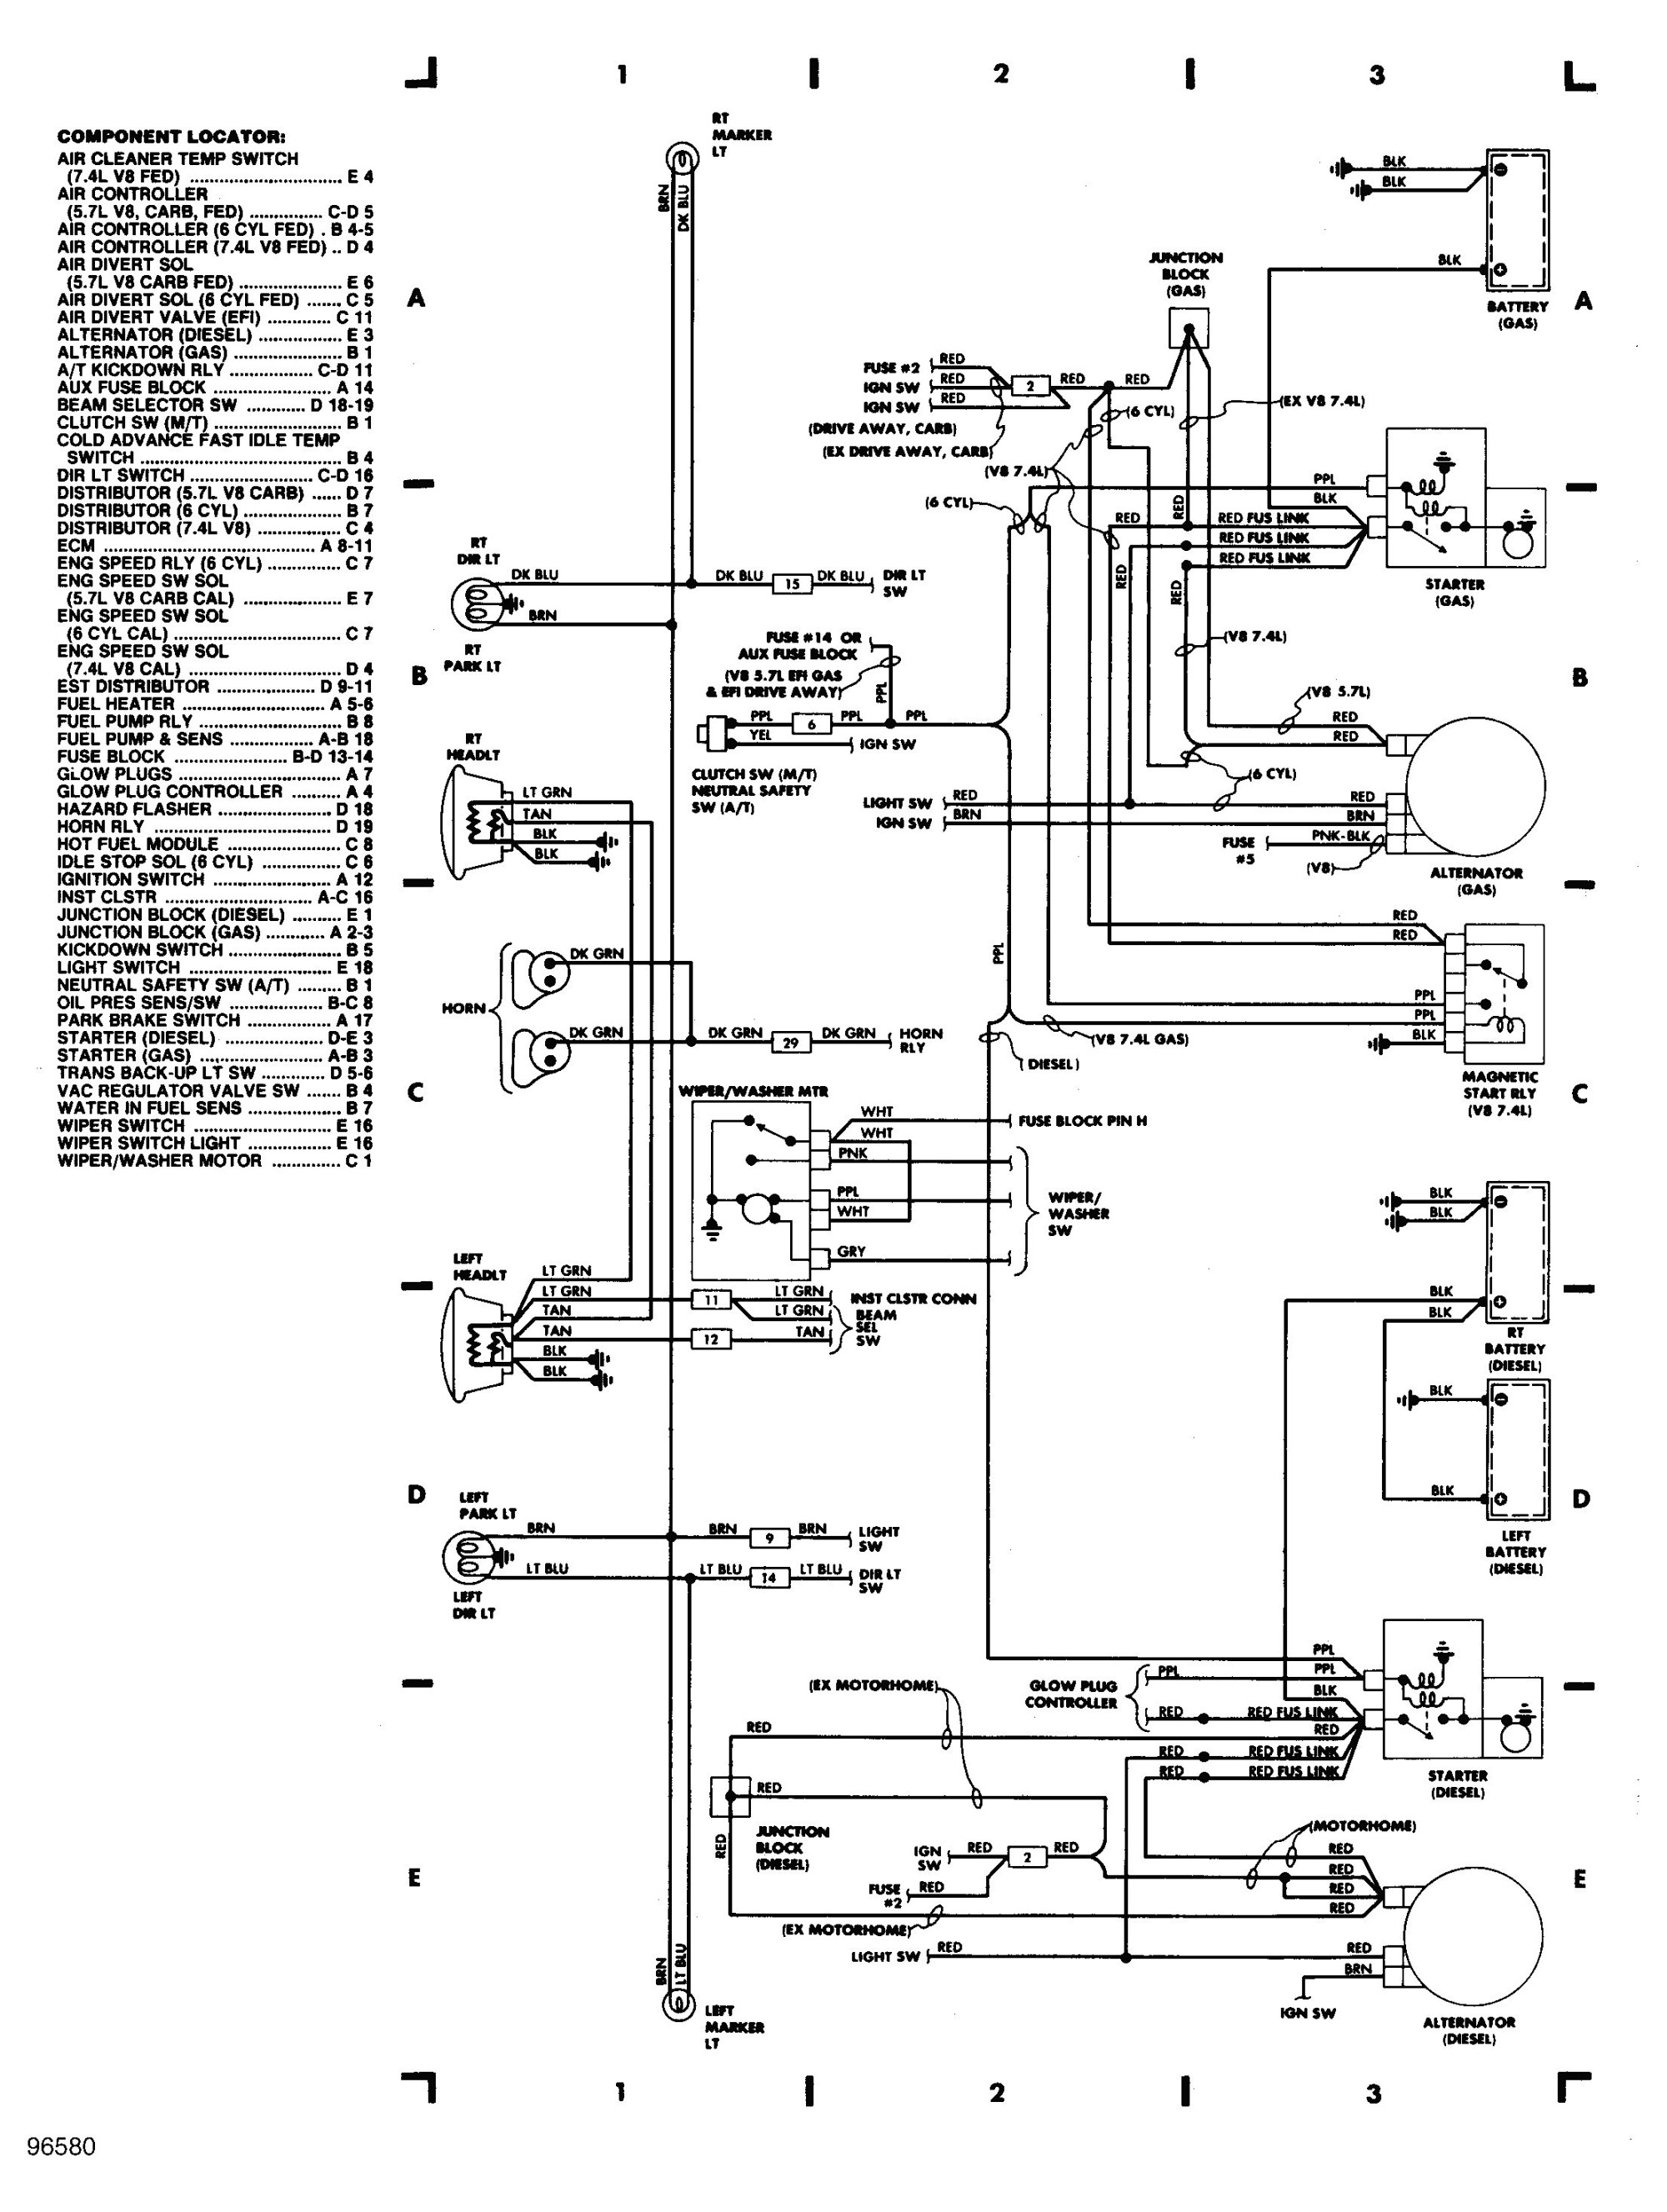 hight resolution of switch wiring diagram awesome 4l60e wiring harness diagram new for neutral safety also